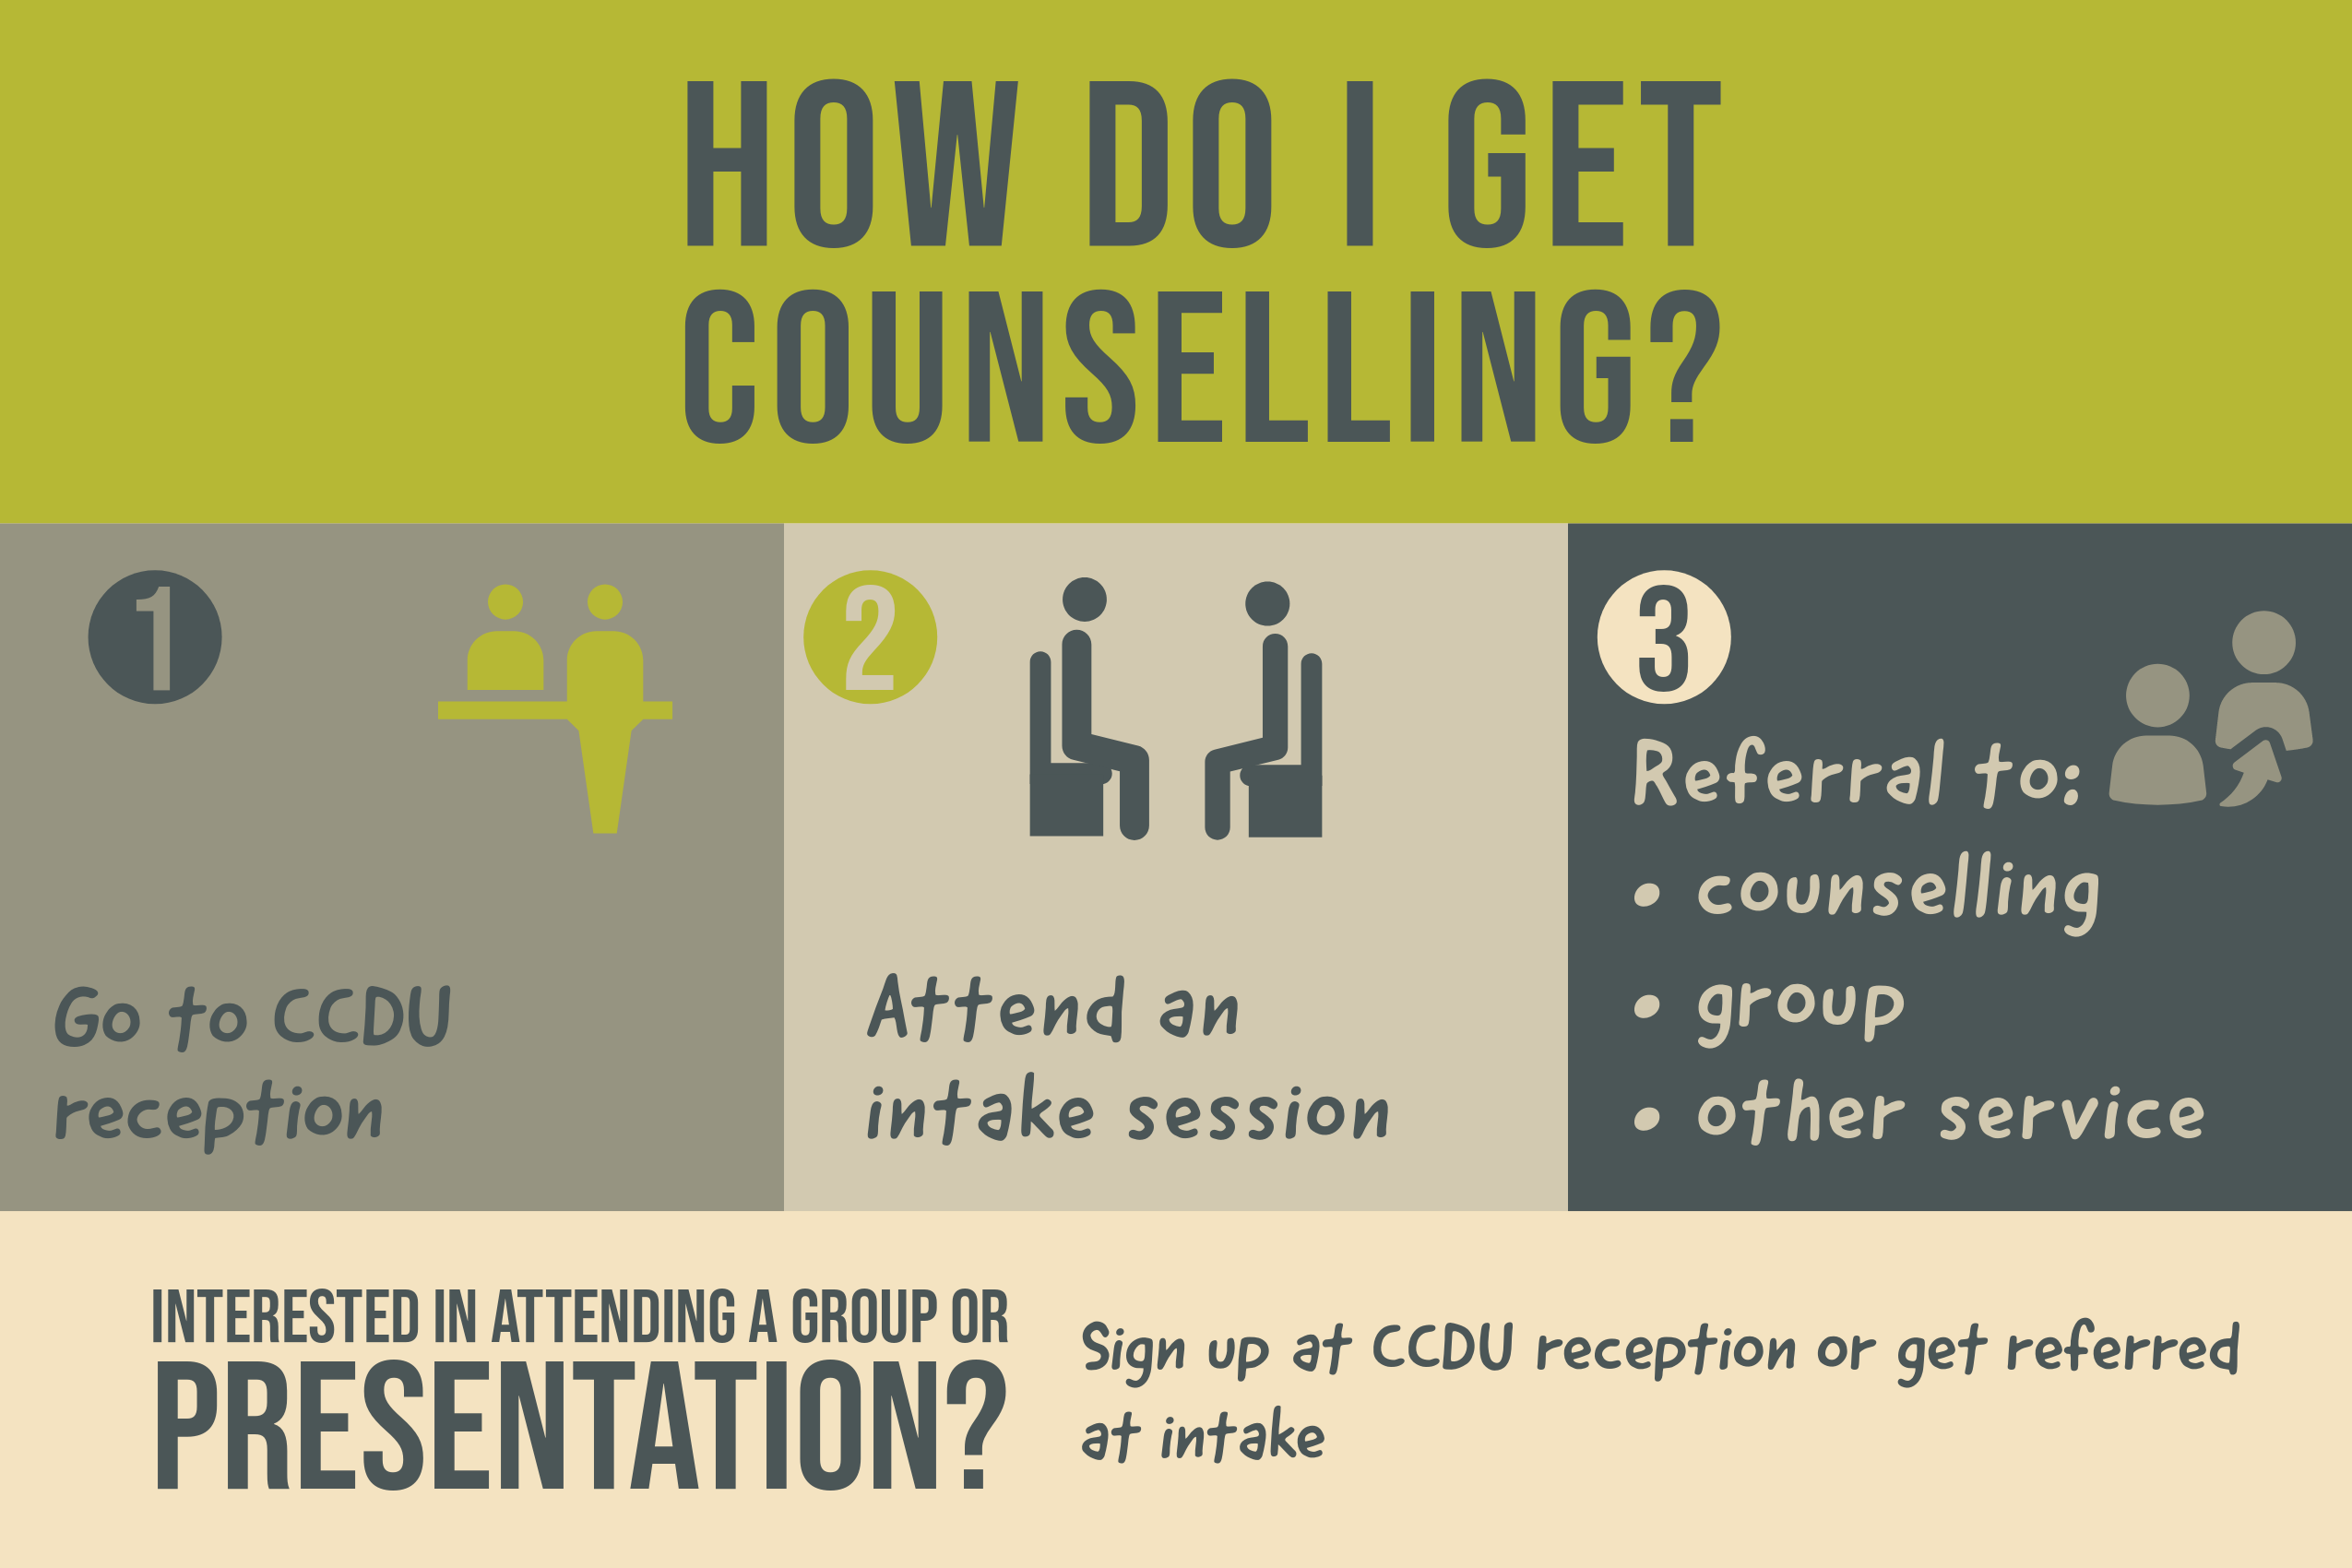 Infographic showing how to go about getting counselling at Wits